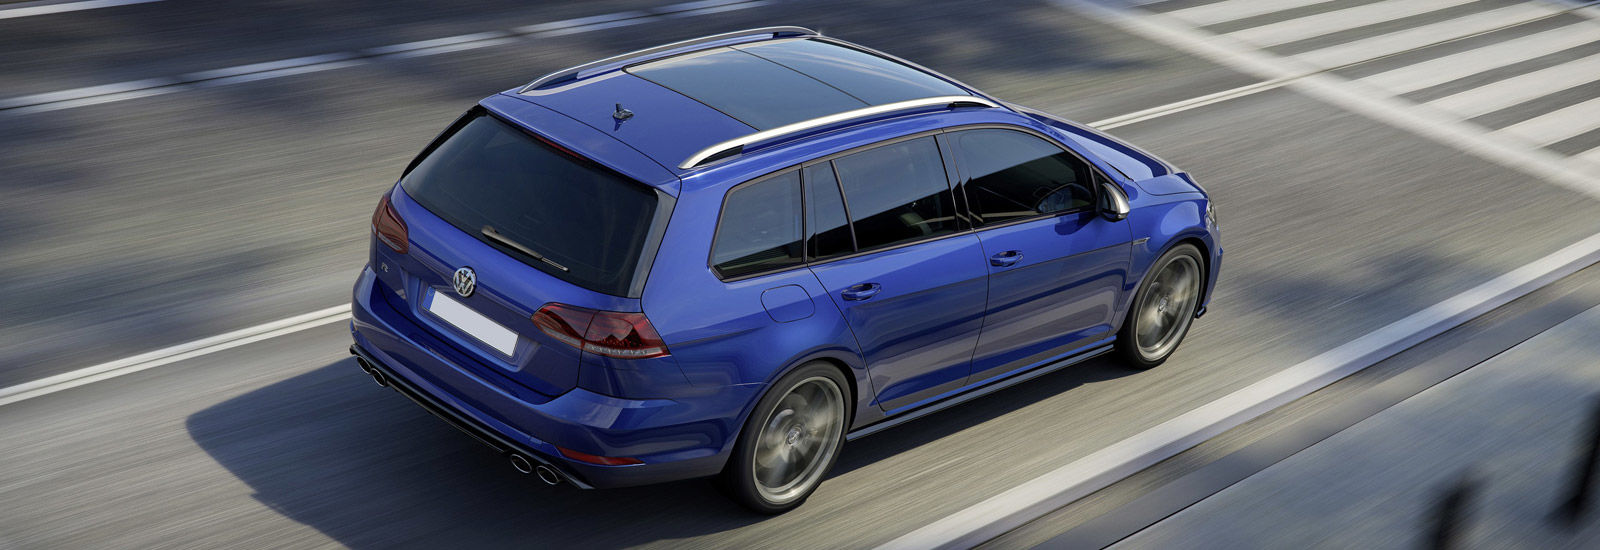 2017 vw golf r and r estate price specs and release date. Black Bedroom Furniture Sets. Home Design Ideas